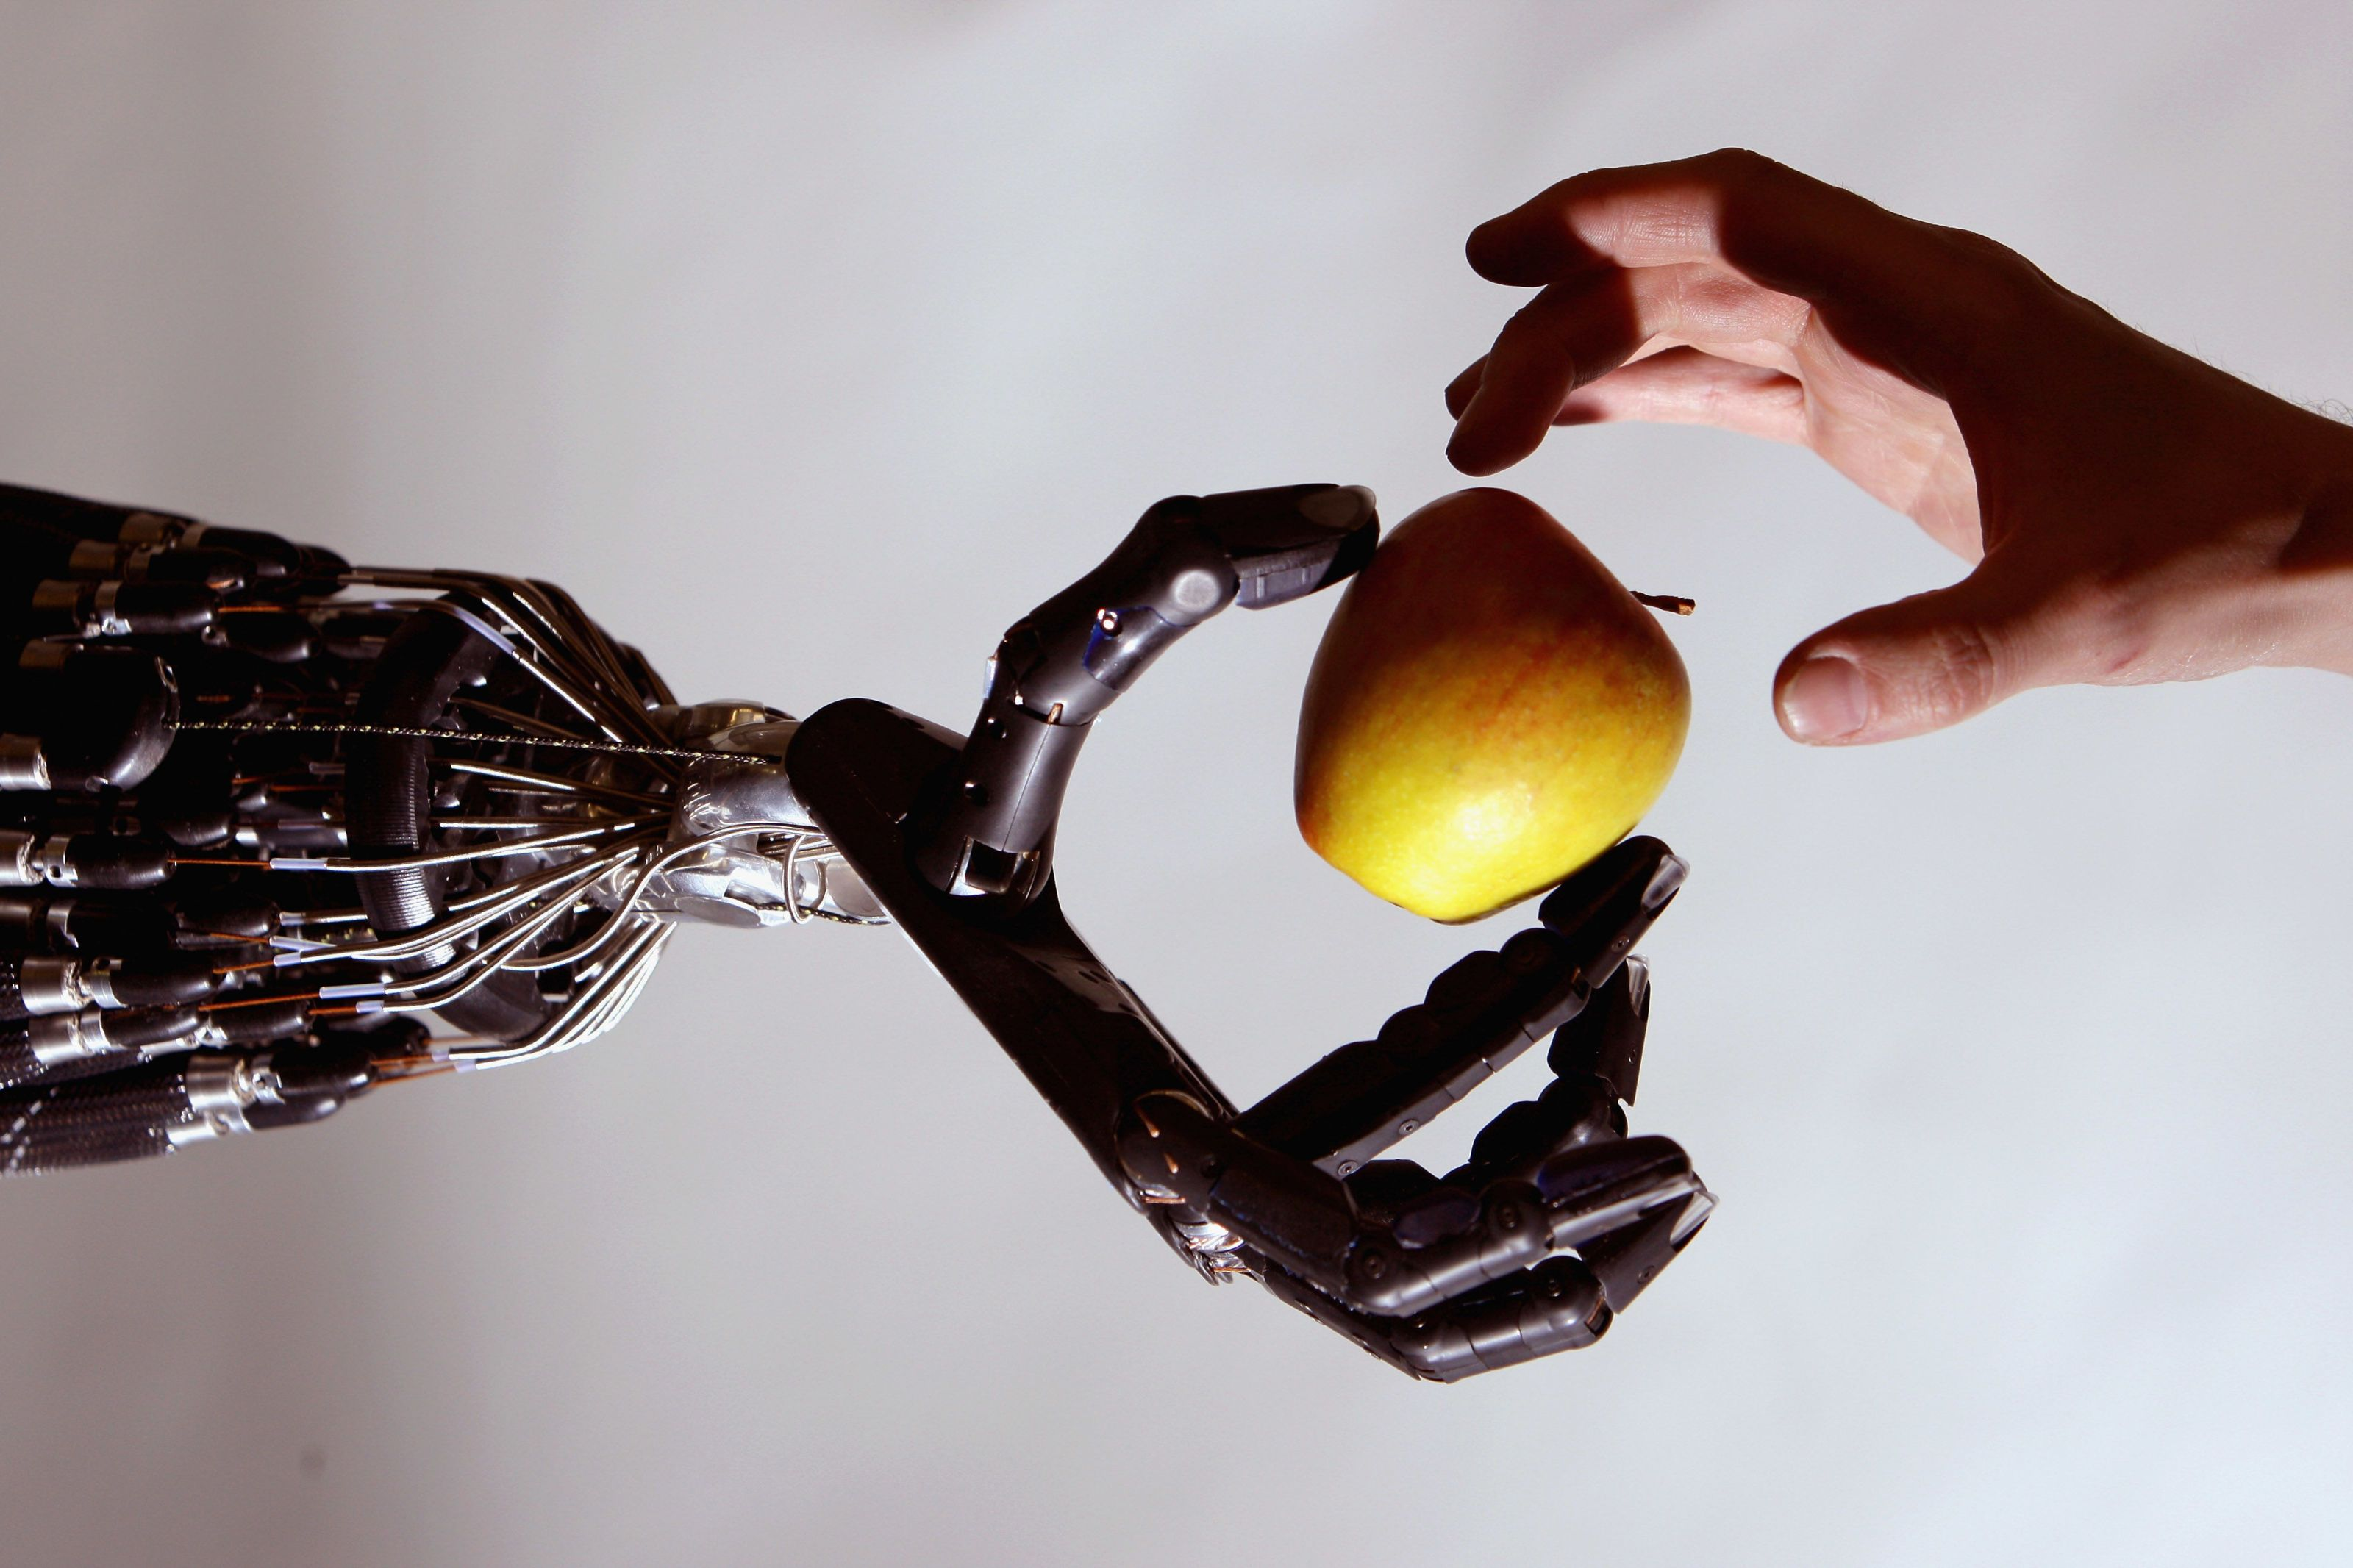 Synthetic Skin That Remembers Can Teach Robot Hands To Be Gentle